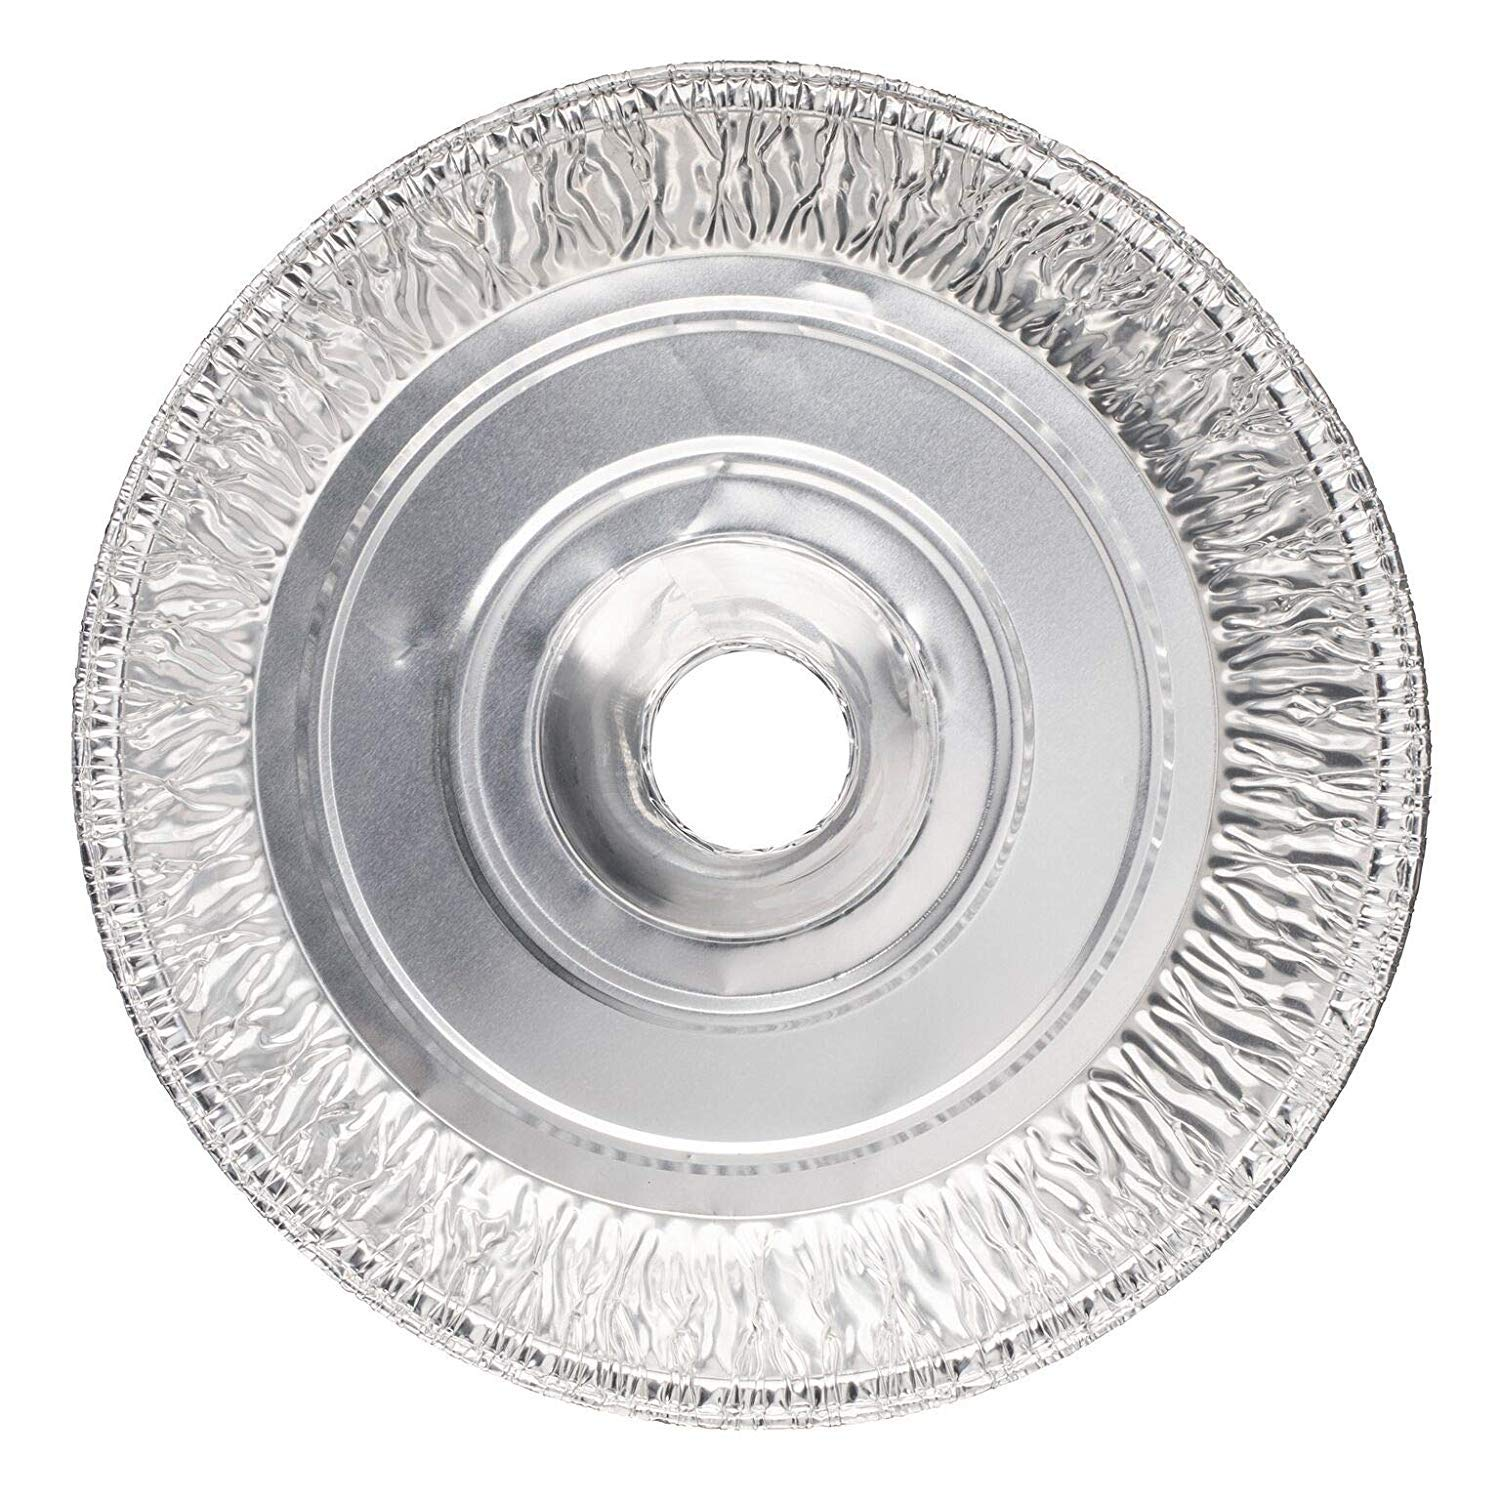 Disposable Round Cake Baking Pans - Aluminum Foil Bundt Tube Tin Great for Baking Decorative Display, Parties (20 Pans, 8-inch Round) by Plastible (Image #2)